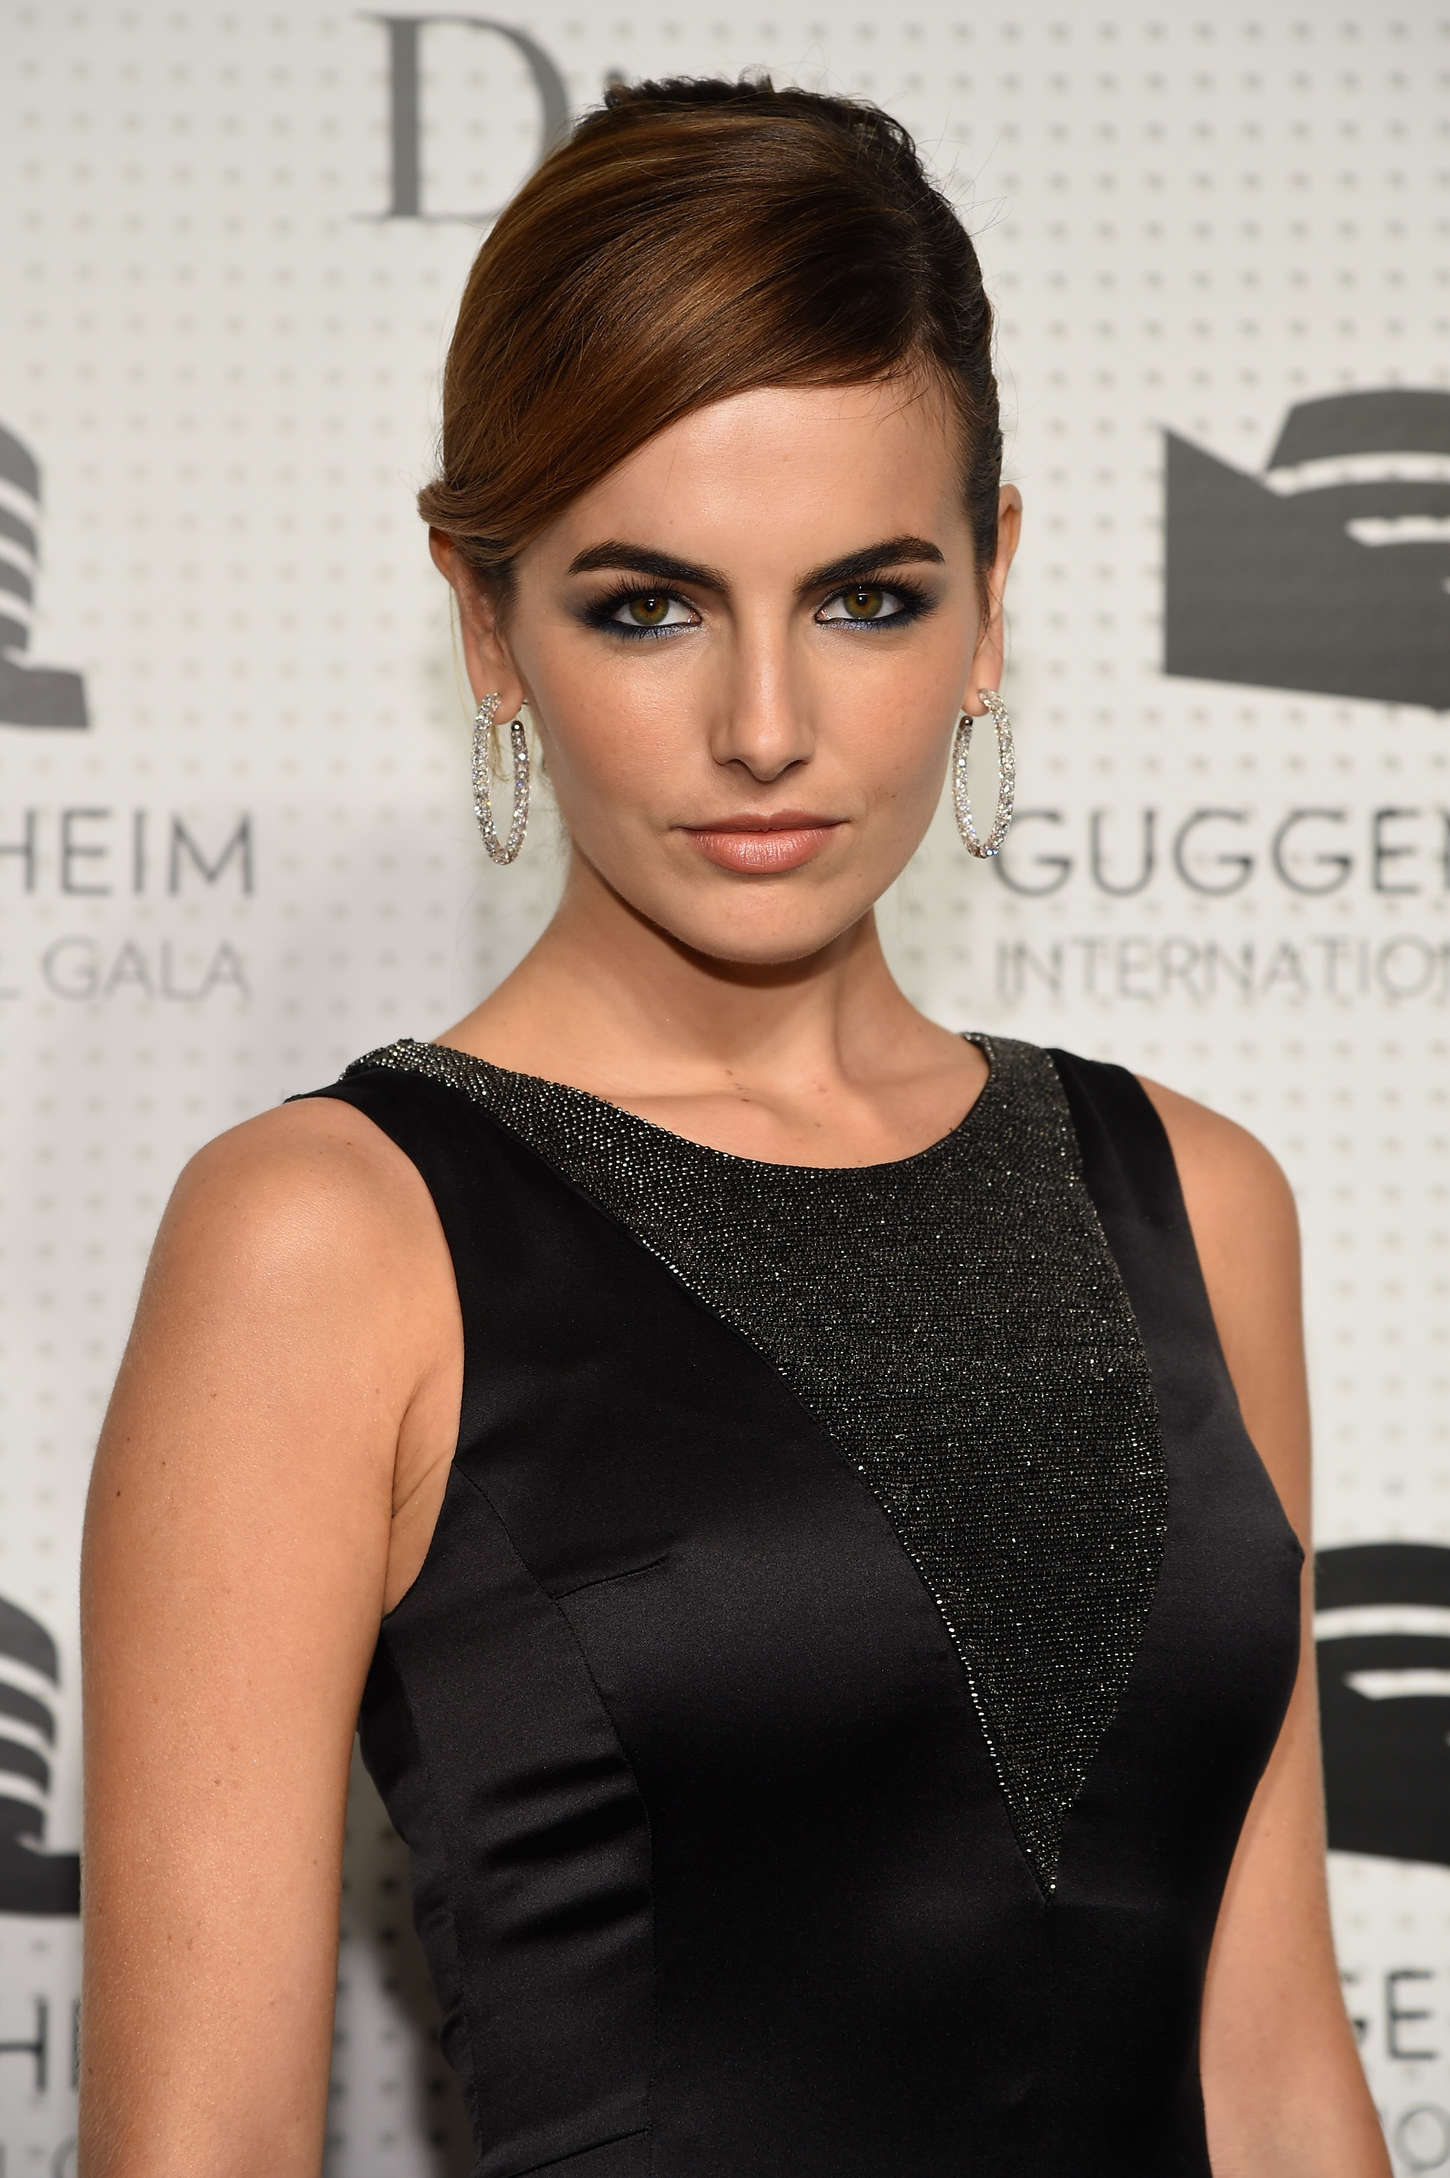 Camilla Belle - Guggenheim International Gala Dinner made possible by Dior in NYC